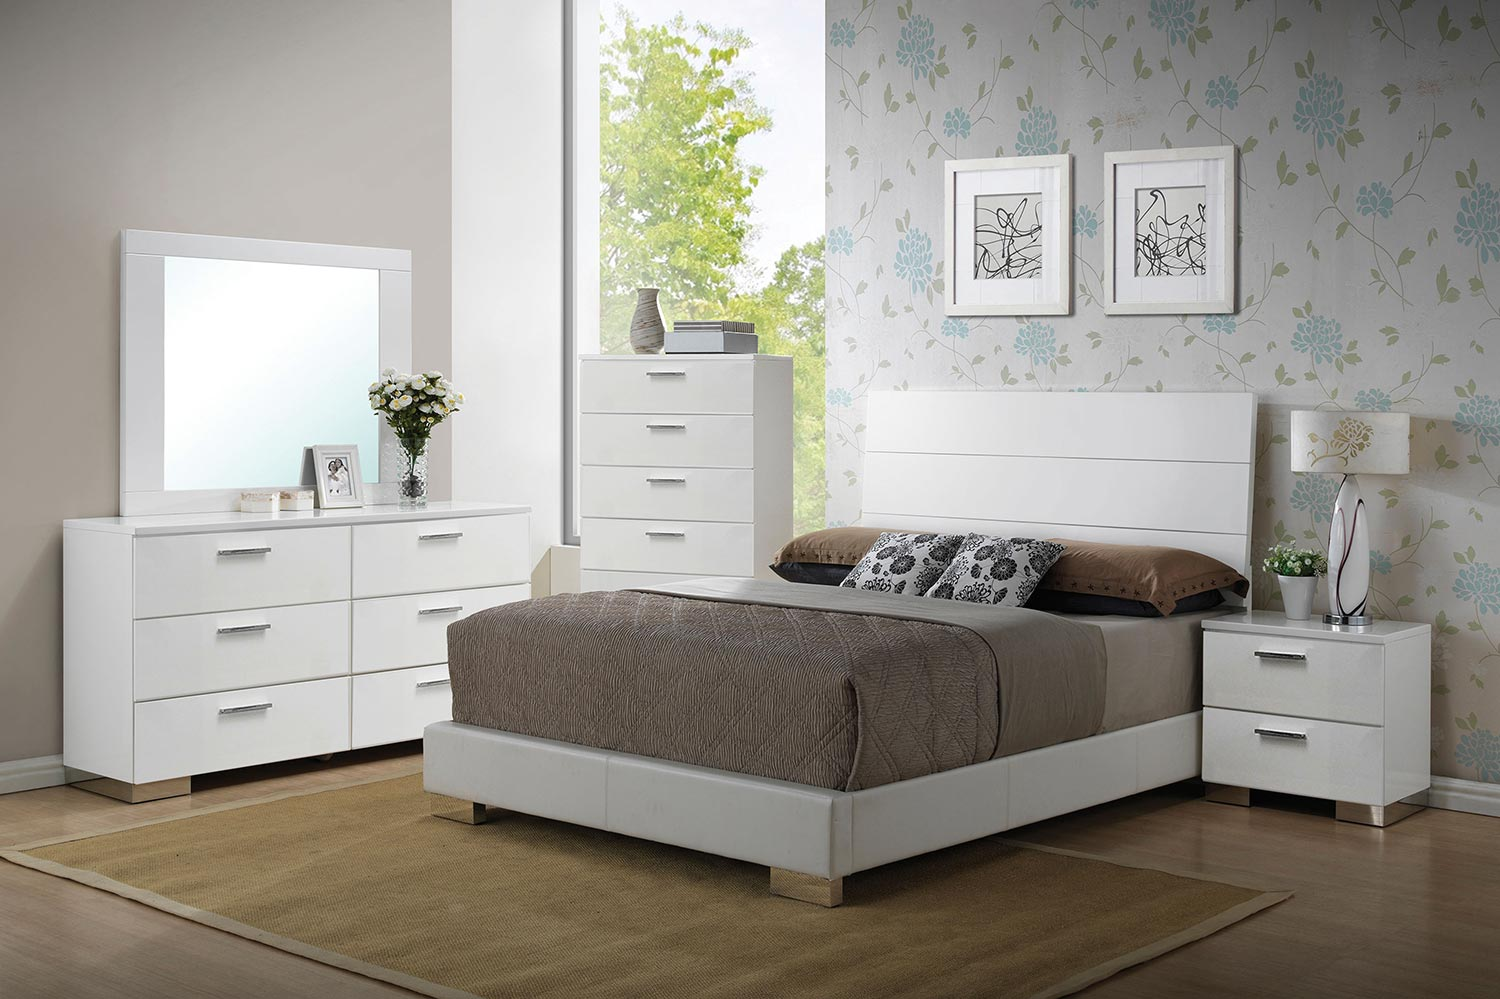 Acme Lorimar Bedroom Set - White Vinyl/Chrome Leg